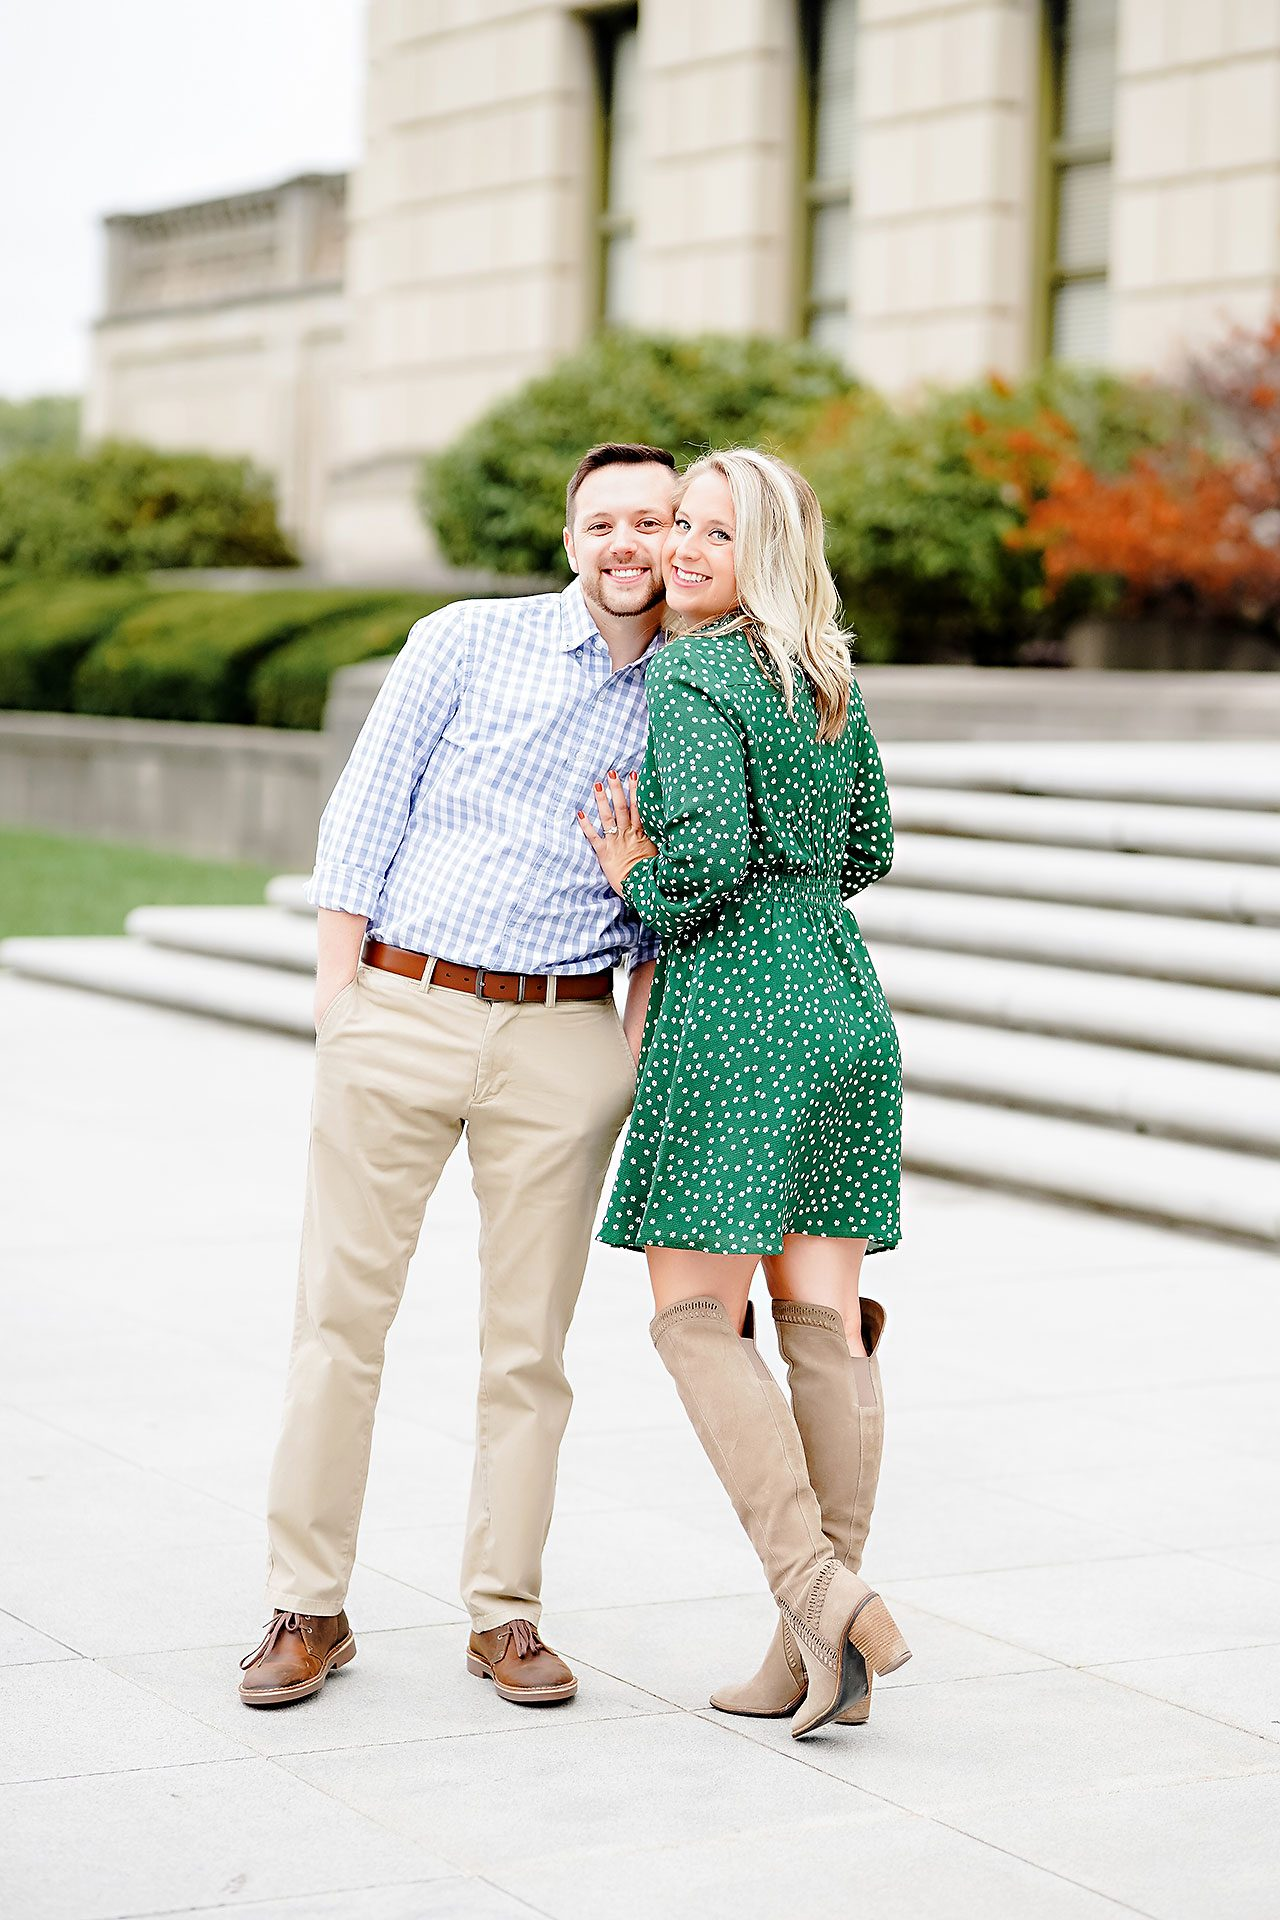 Kristen Jonny Indianapolis Downtown Engagement Session 053